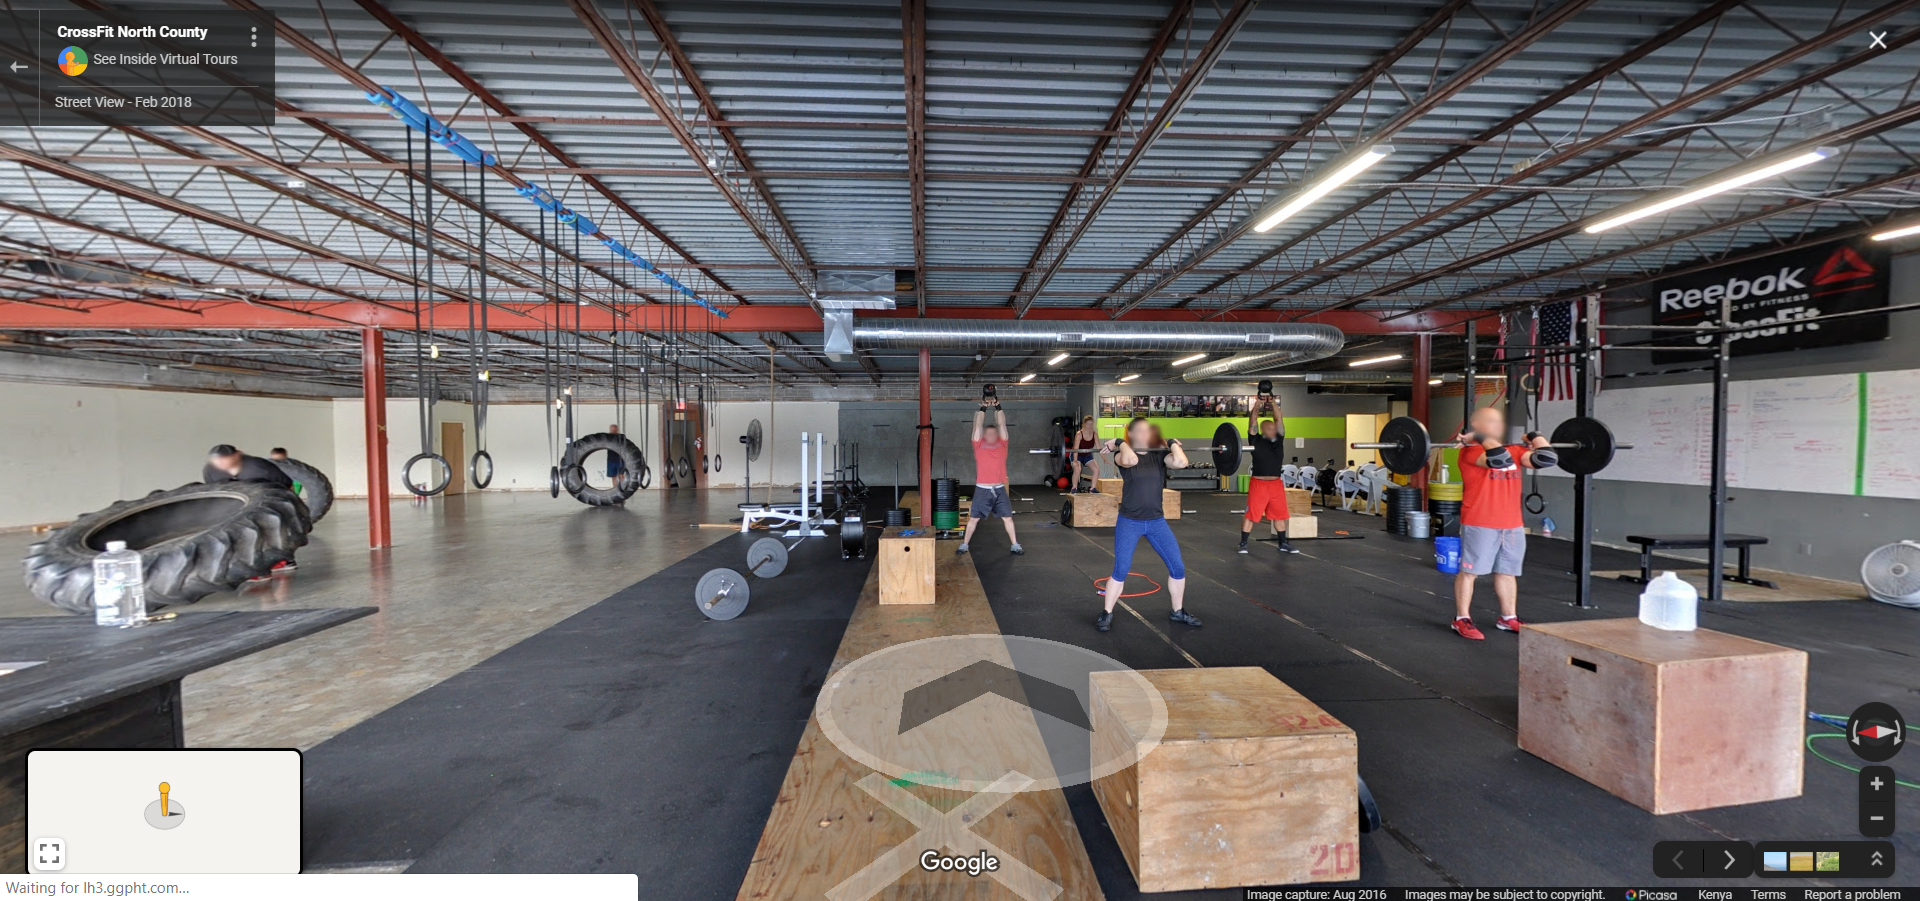 CrossFit North County - Hazelwood, MO